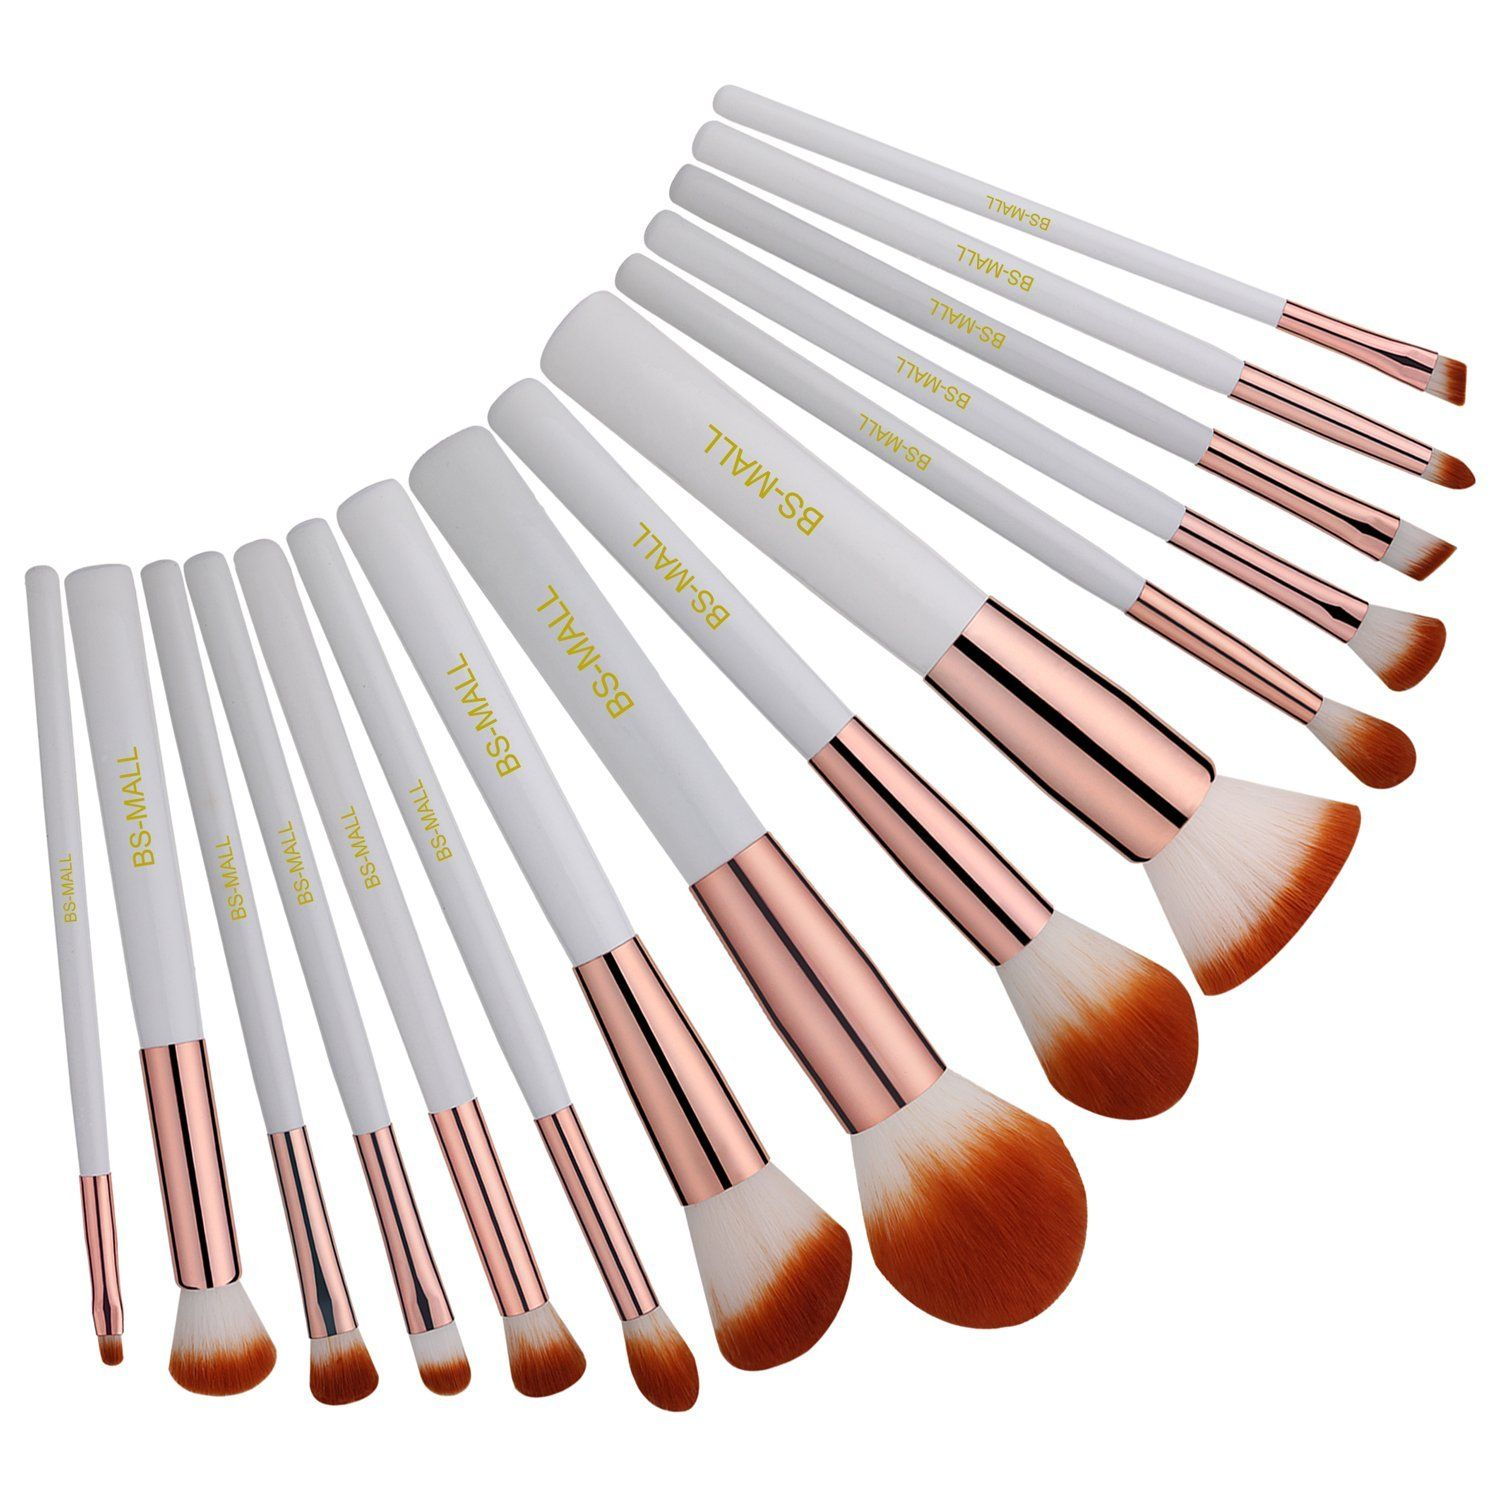 BSMALLTM Premium Synthetic Kabuki Makeup Brush Set